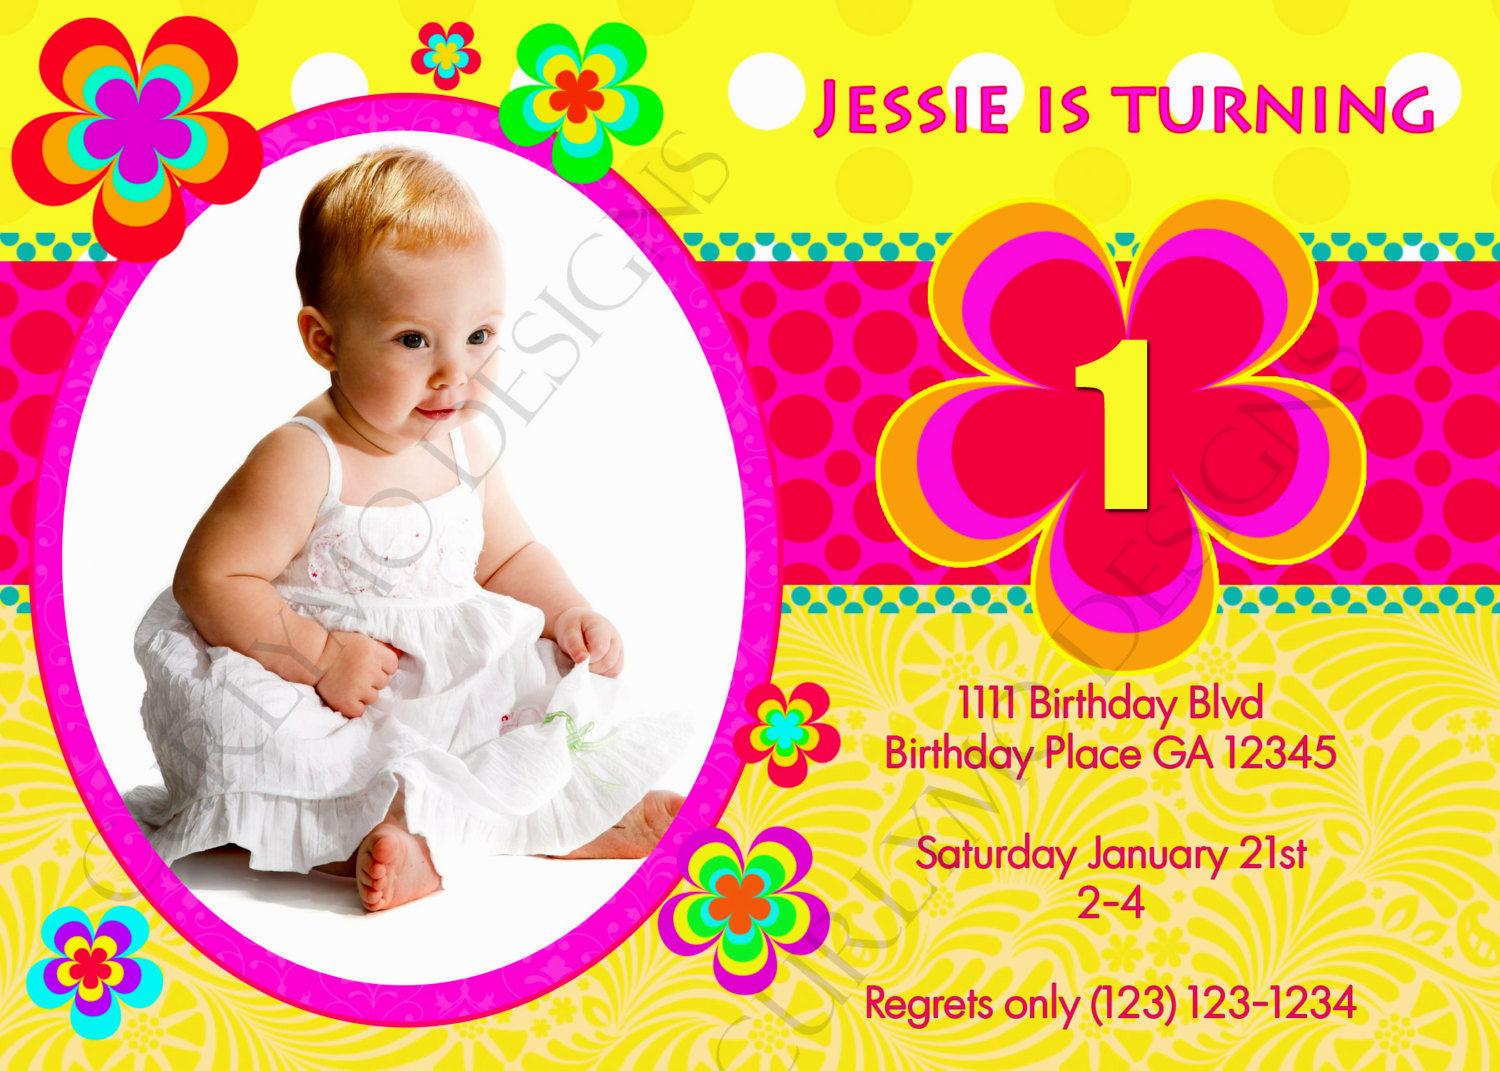 birthday invitation layout design ; simple-creation-birthday-invitation-card-design-perfect-finishing-concept-yellow-color-pink-ribbon-real-photo-picture-baby